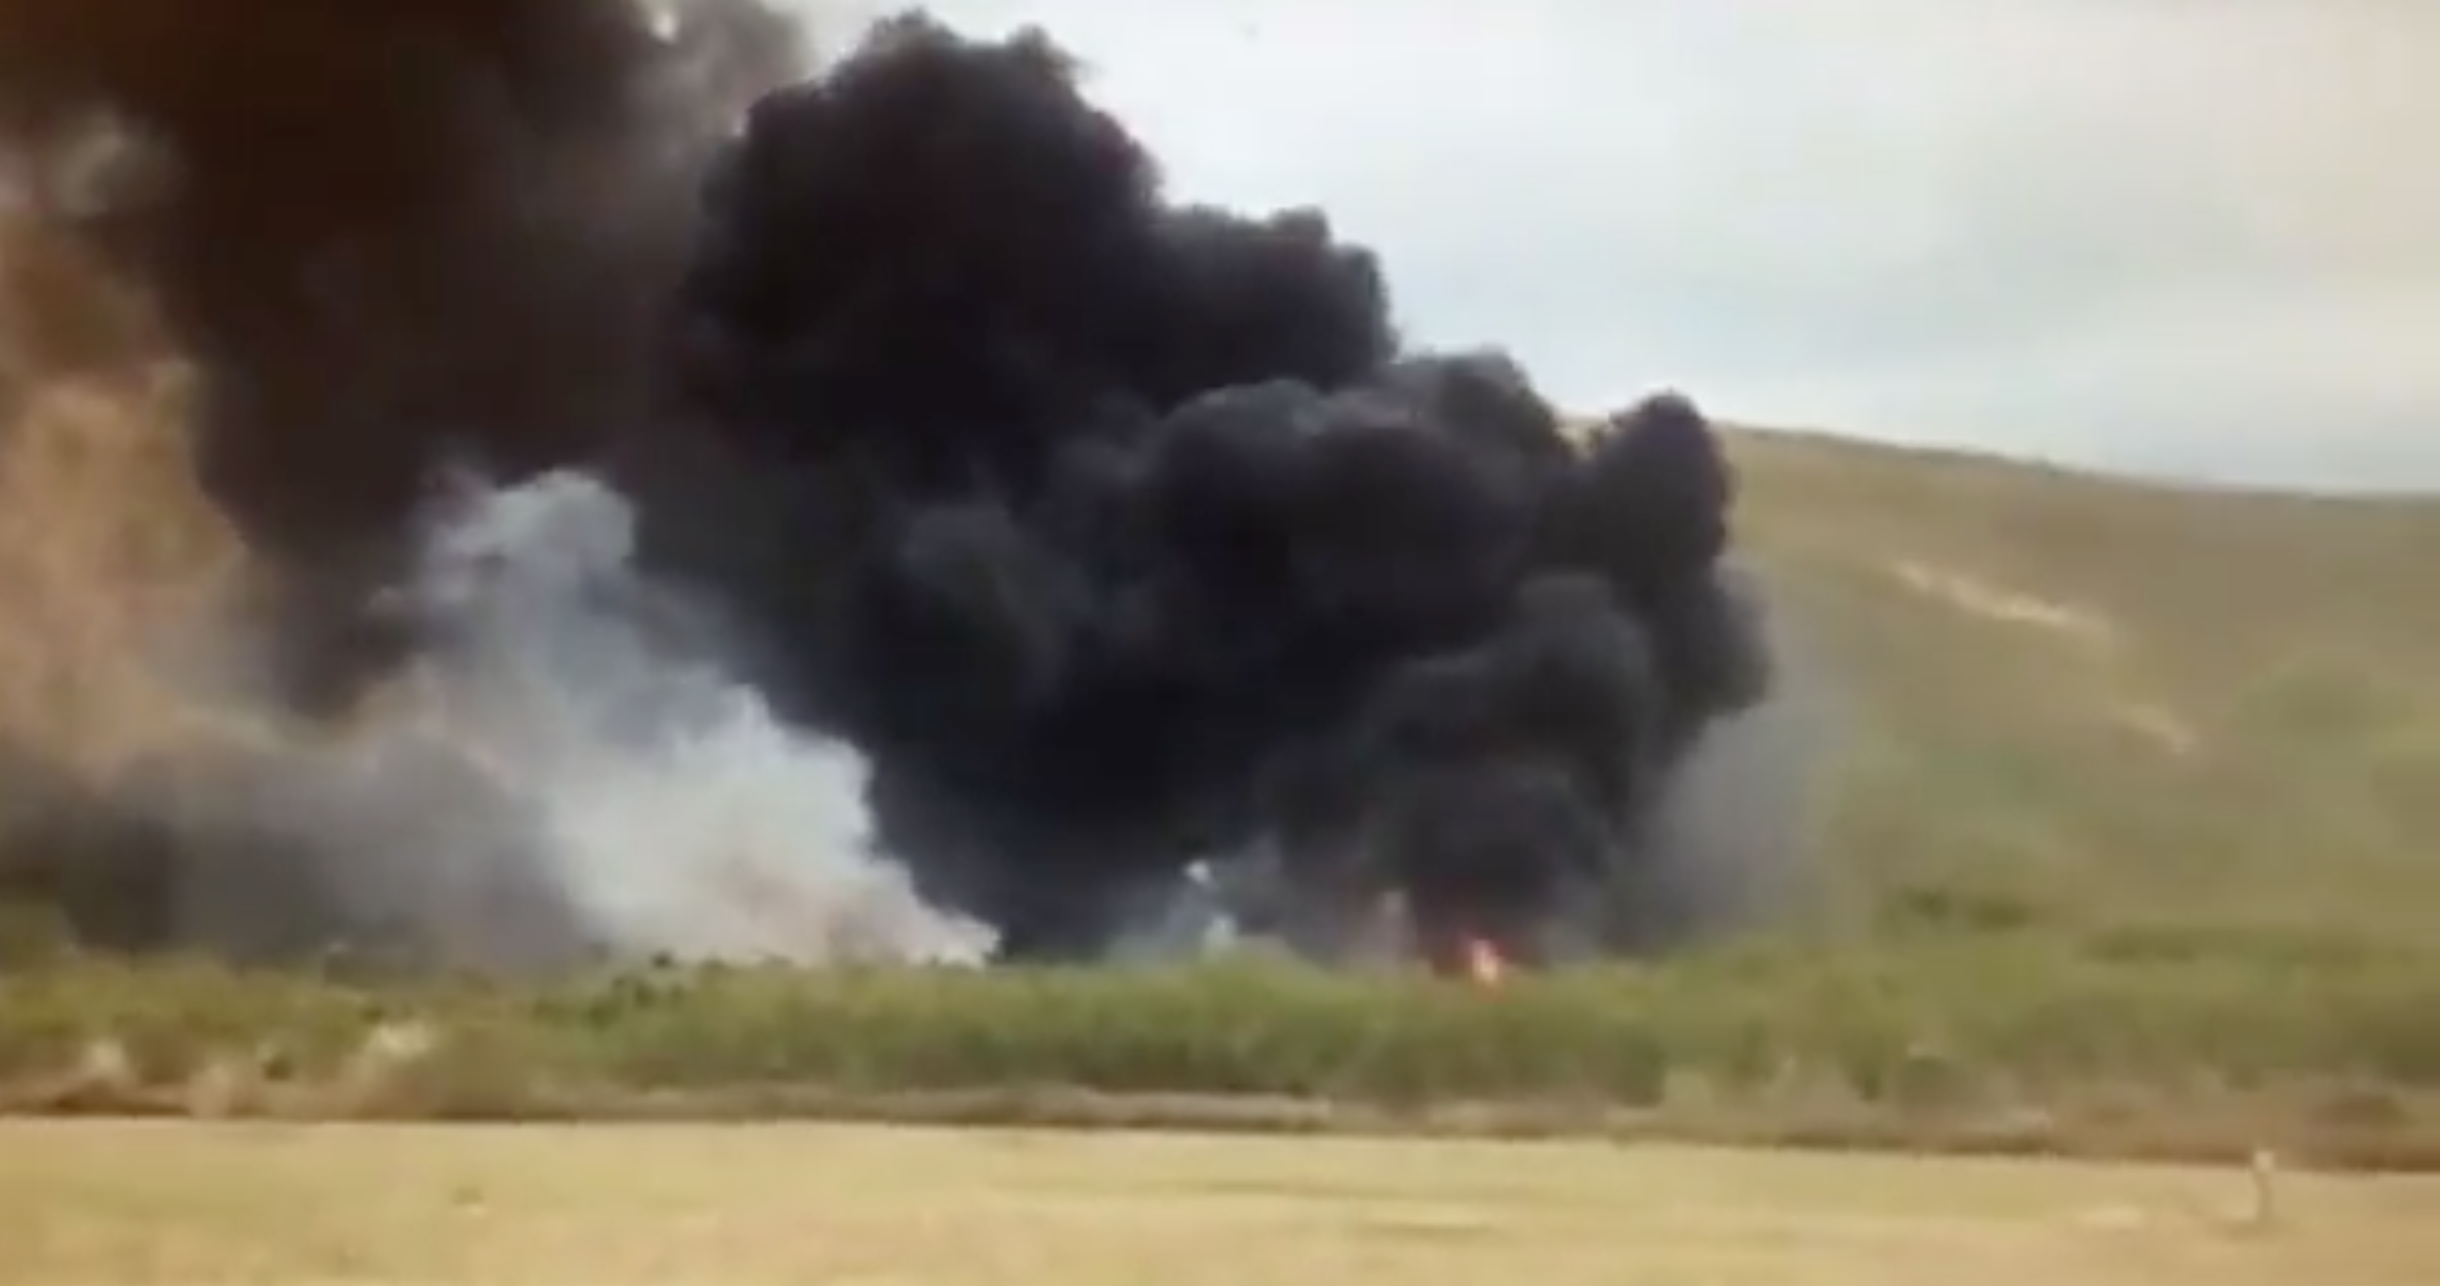 Screen shot of the aftermath of the MV-22 Osprey hard landing during a training exercise in Hawaii. Photo via KITV4.